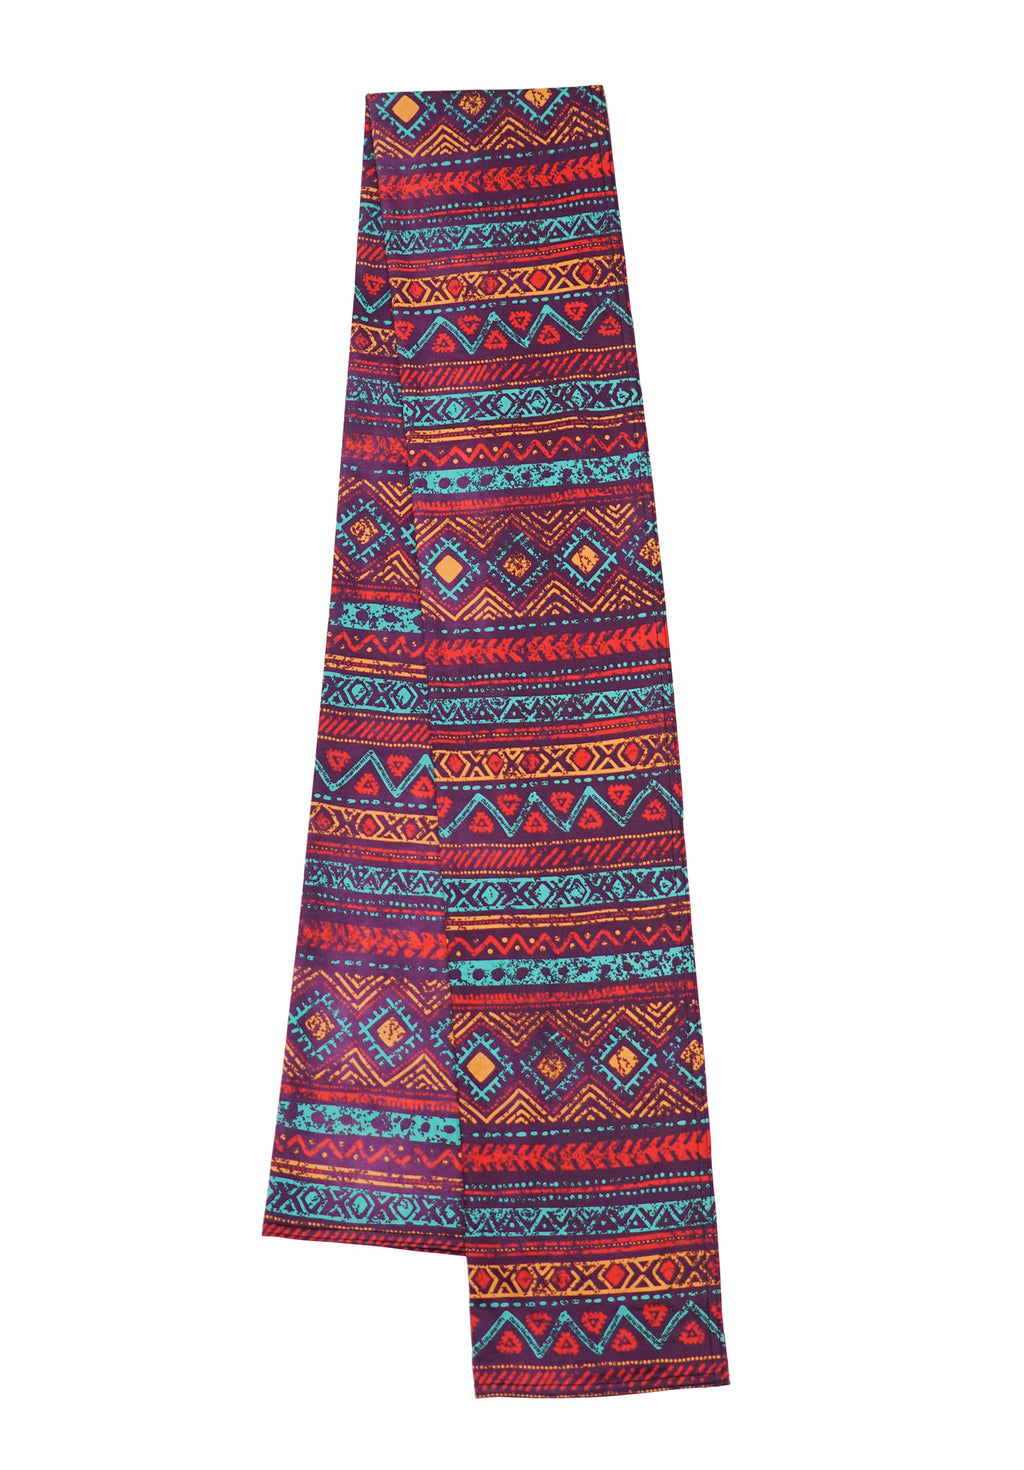 Super comfortable music festival pashmina. Unique tribal patterns with vibrant red, purple, teal, orange, and red colors. The perfect music festival accessory that can be used as a face mask.